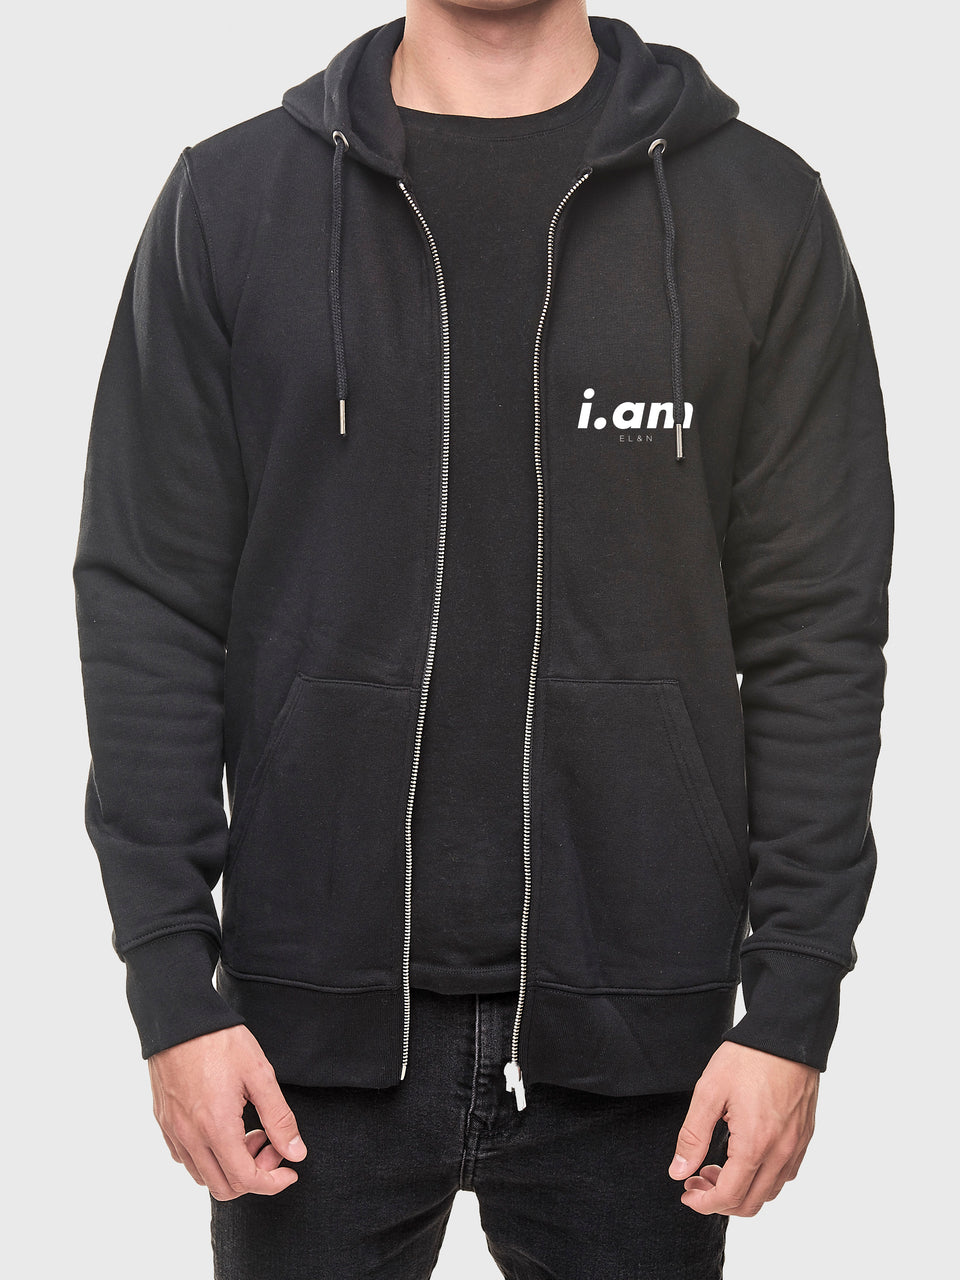 I am who I am - Black - Unisex zip up hoodie